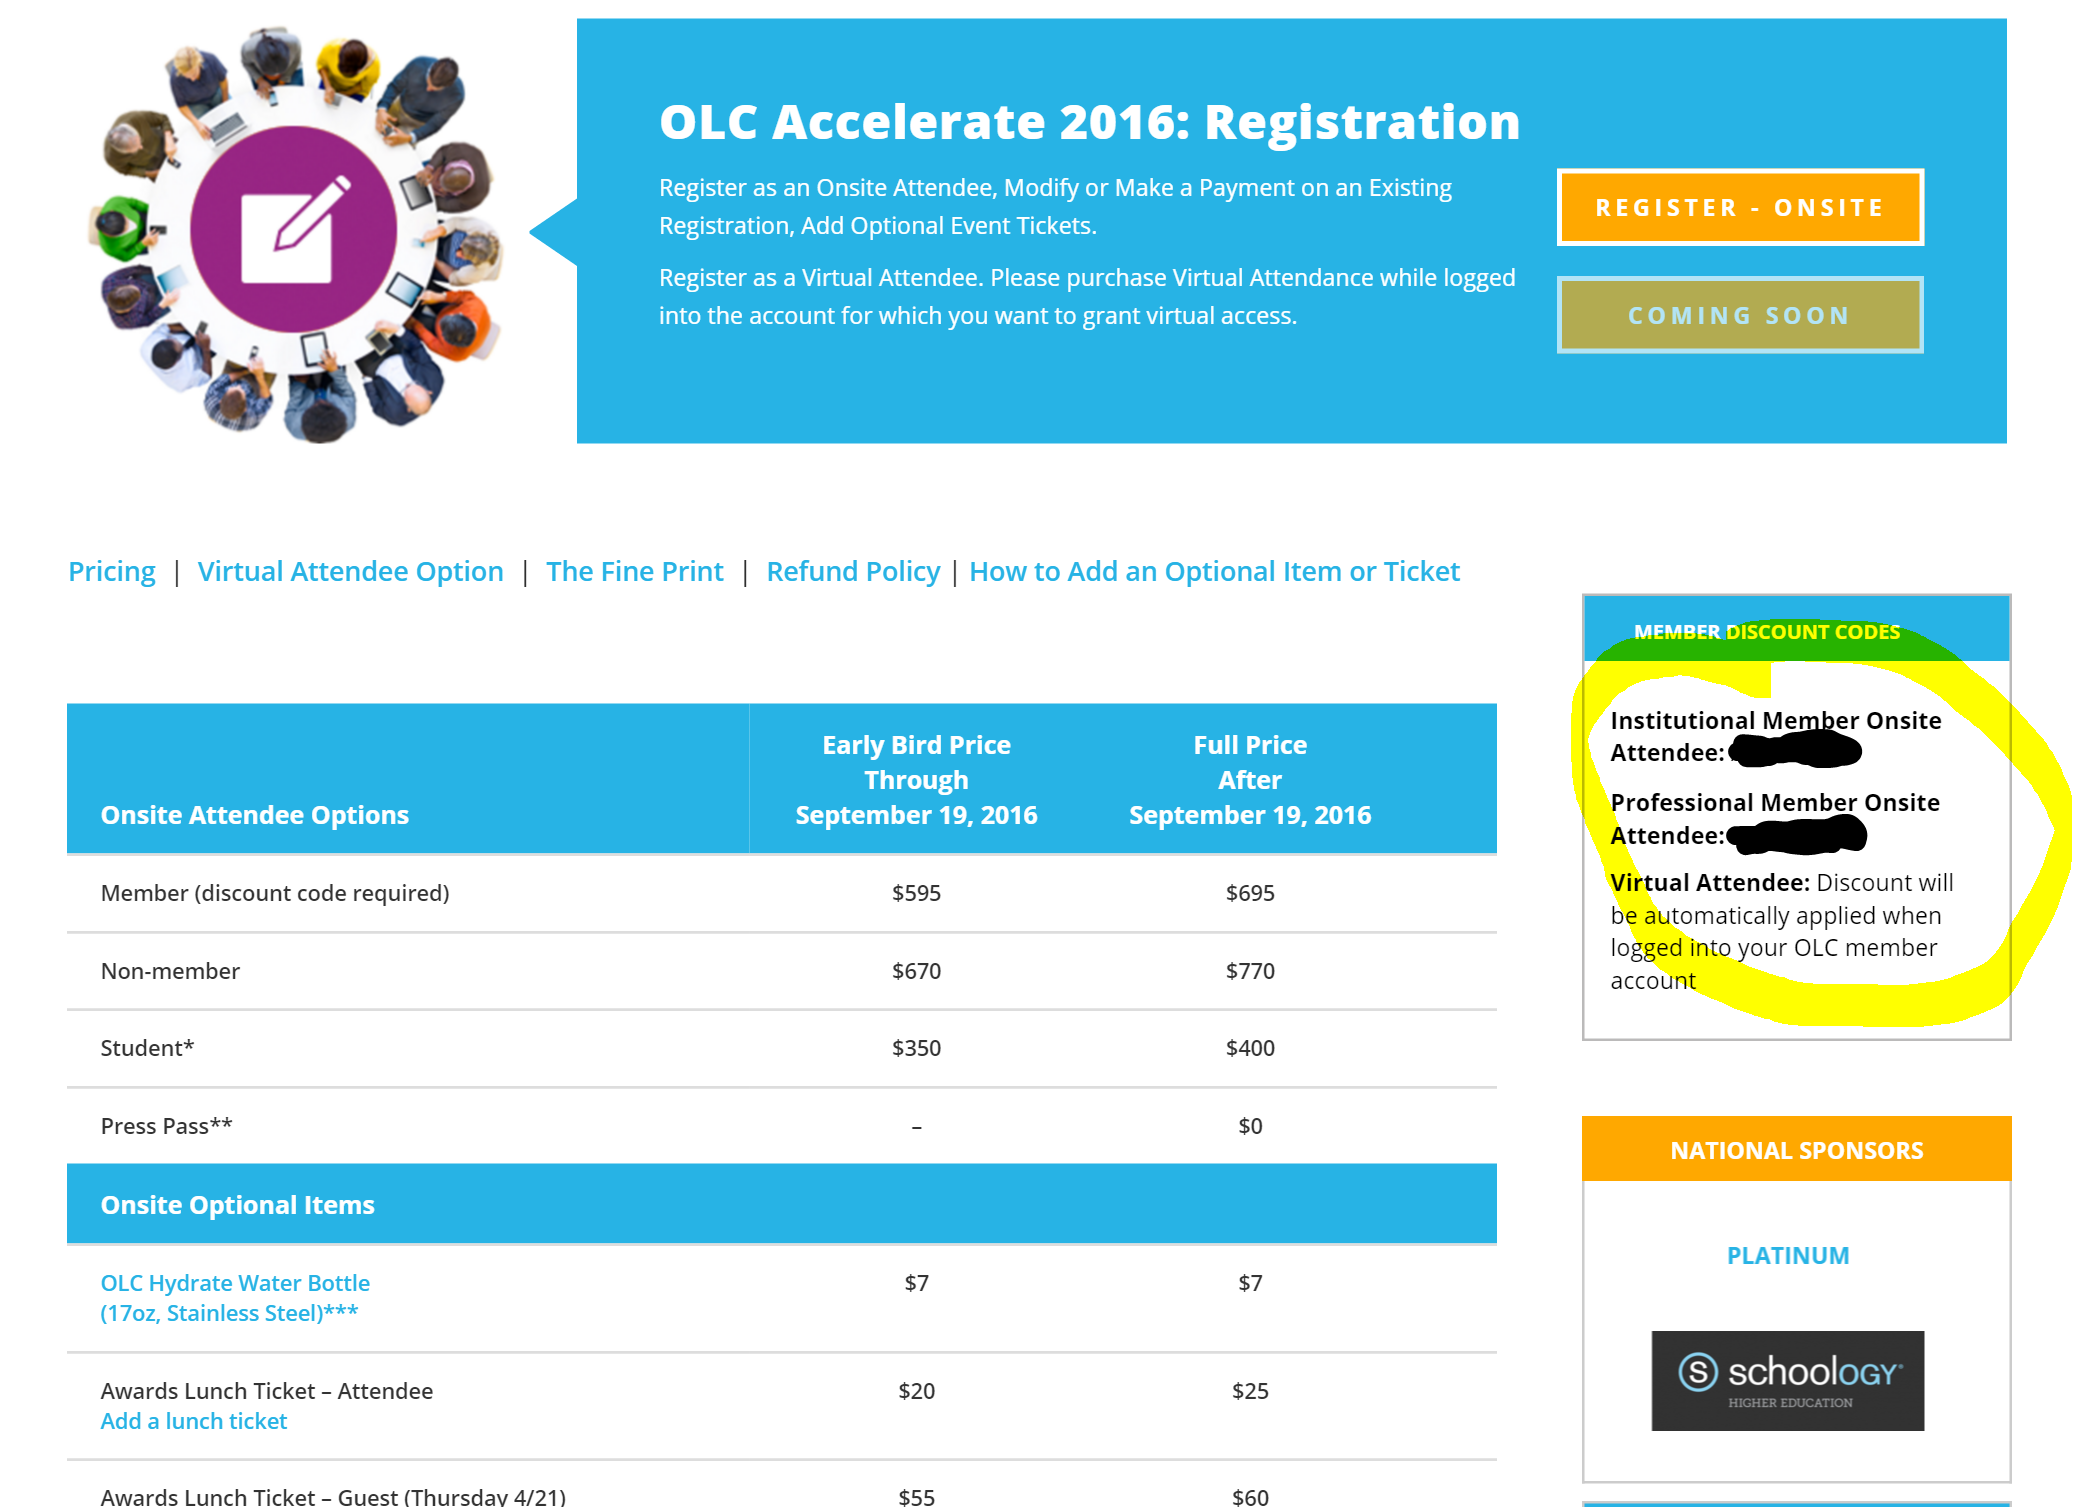 olc accelerate where do i the member discount code for what if i don t see a code